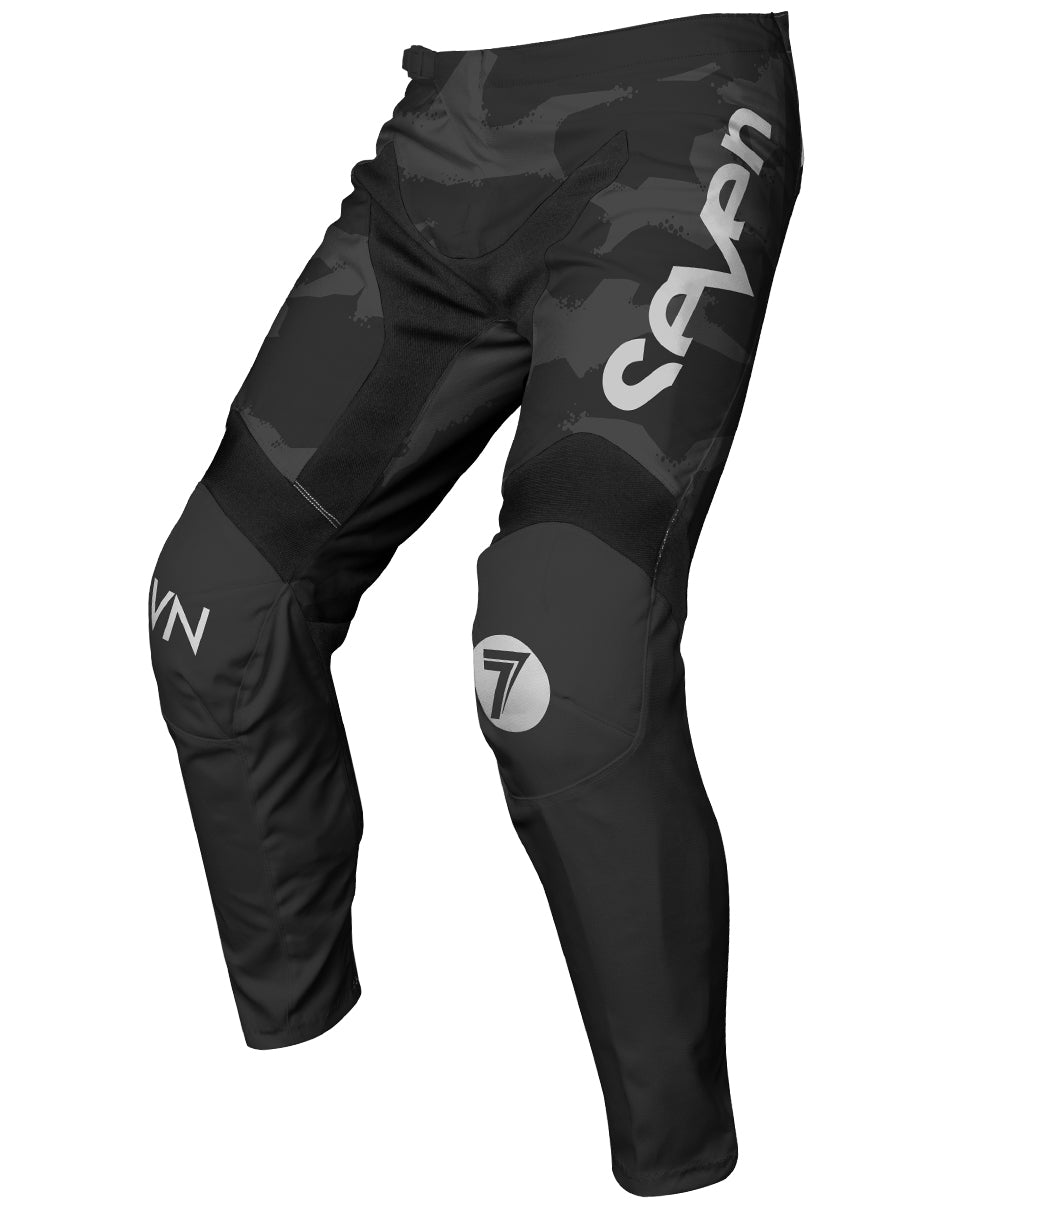 Vox Pursuit Pant- Black